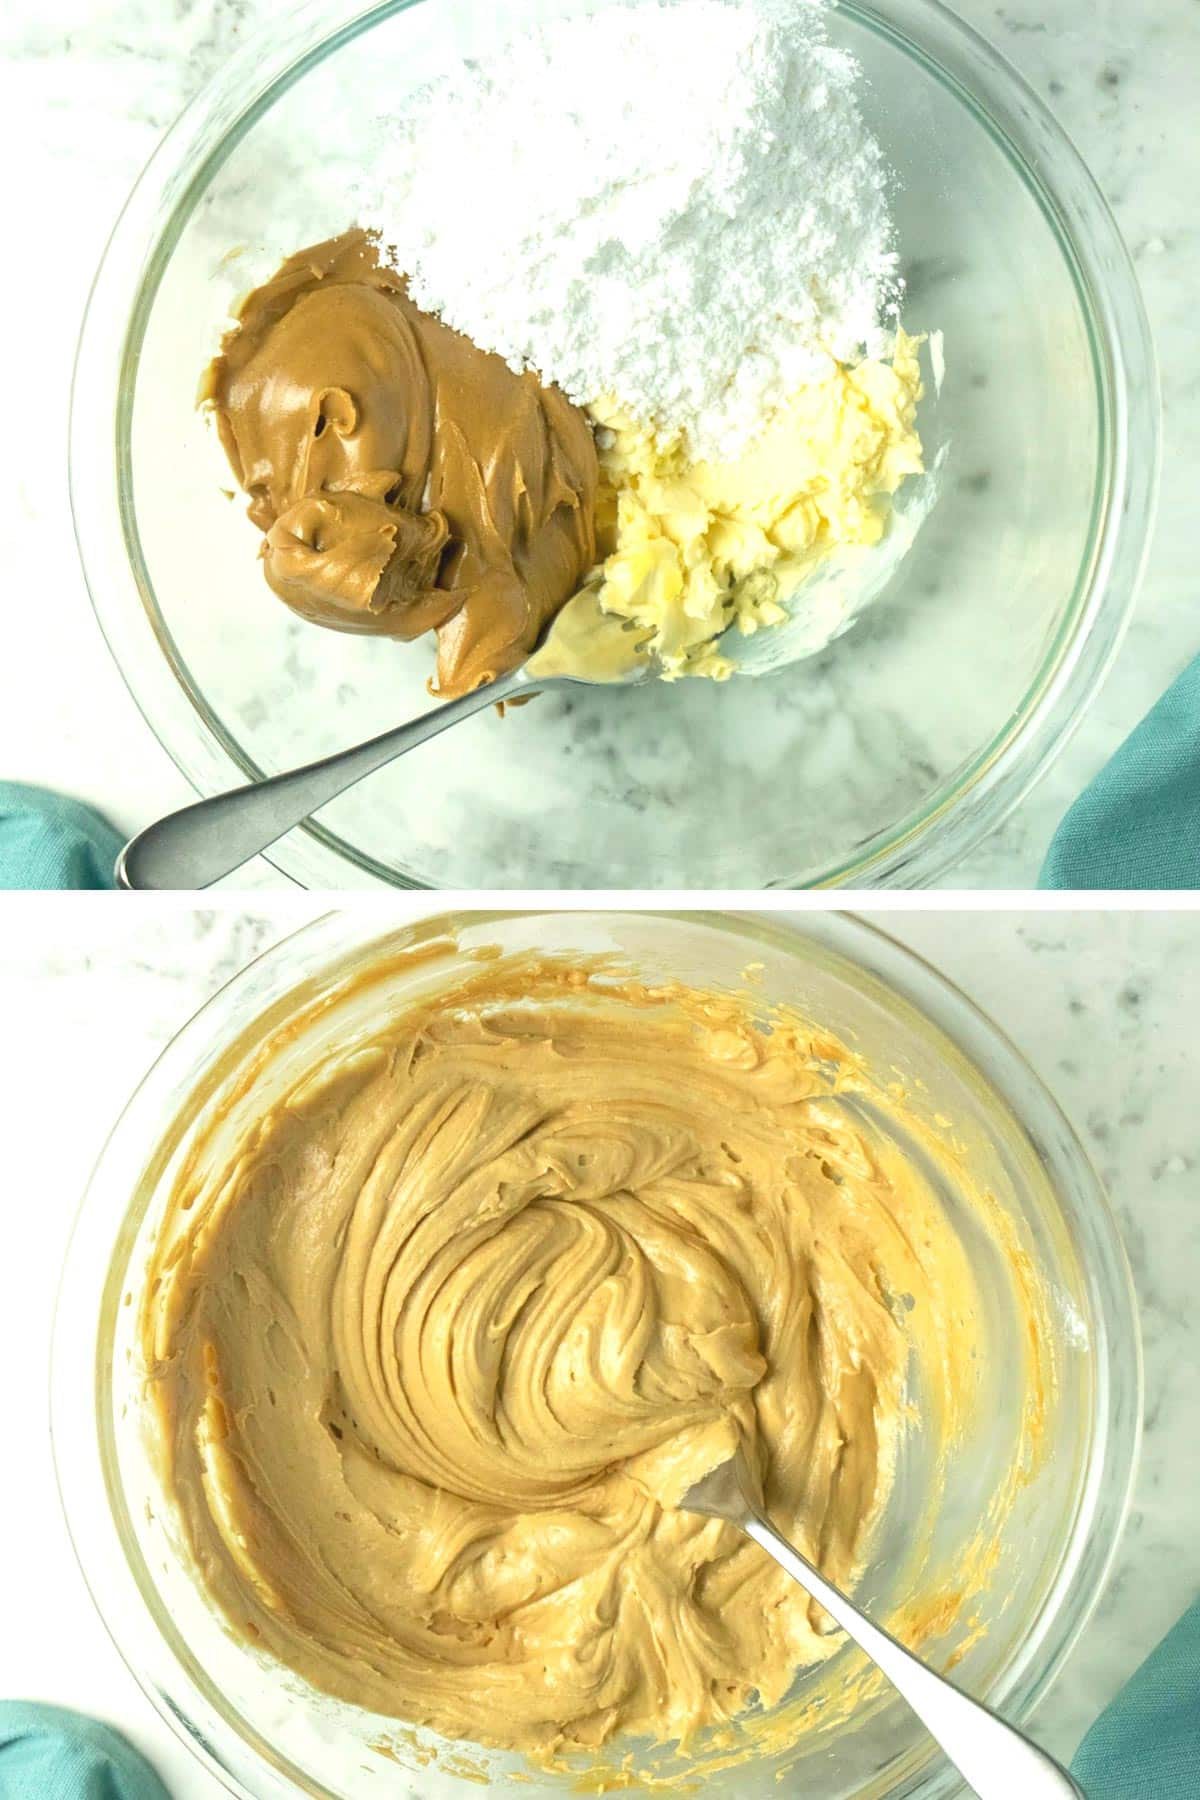 image collage of frosting ingredients in a bowl, then the frosting whipped up, so you can see the color difference